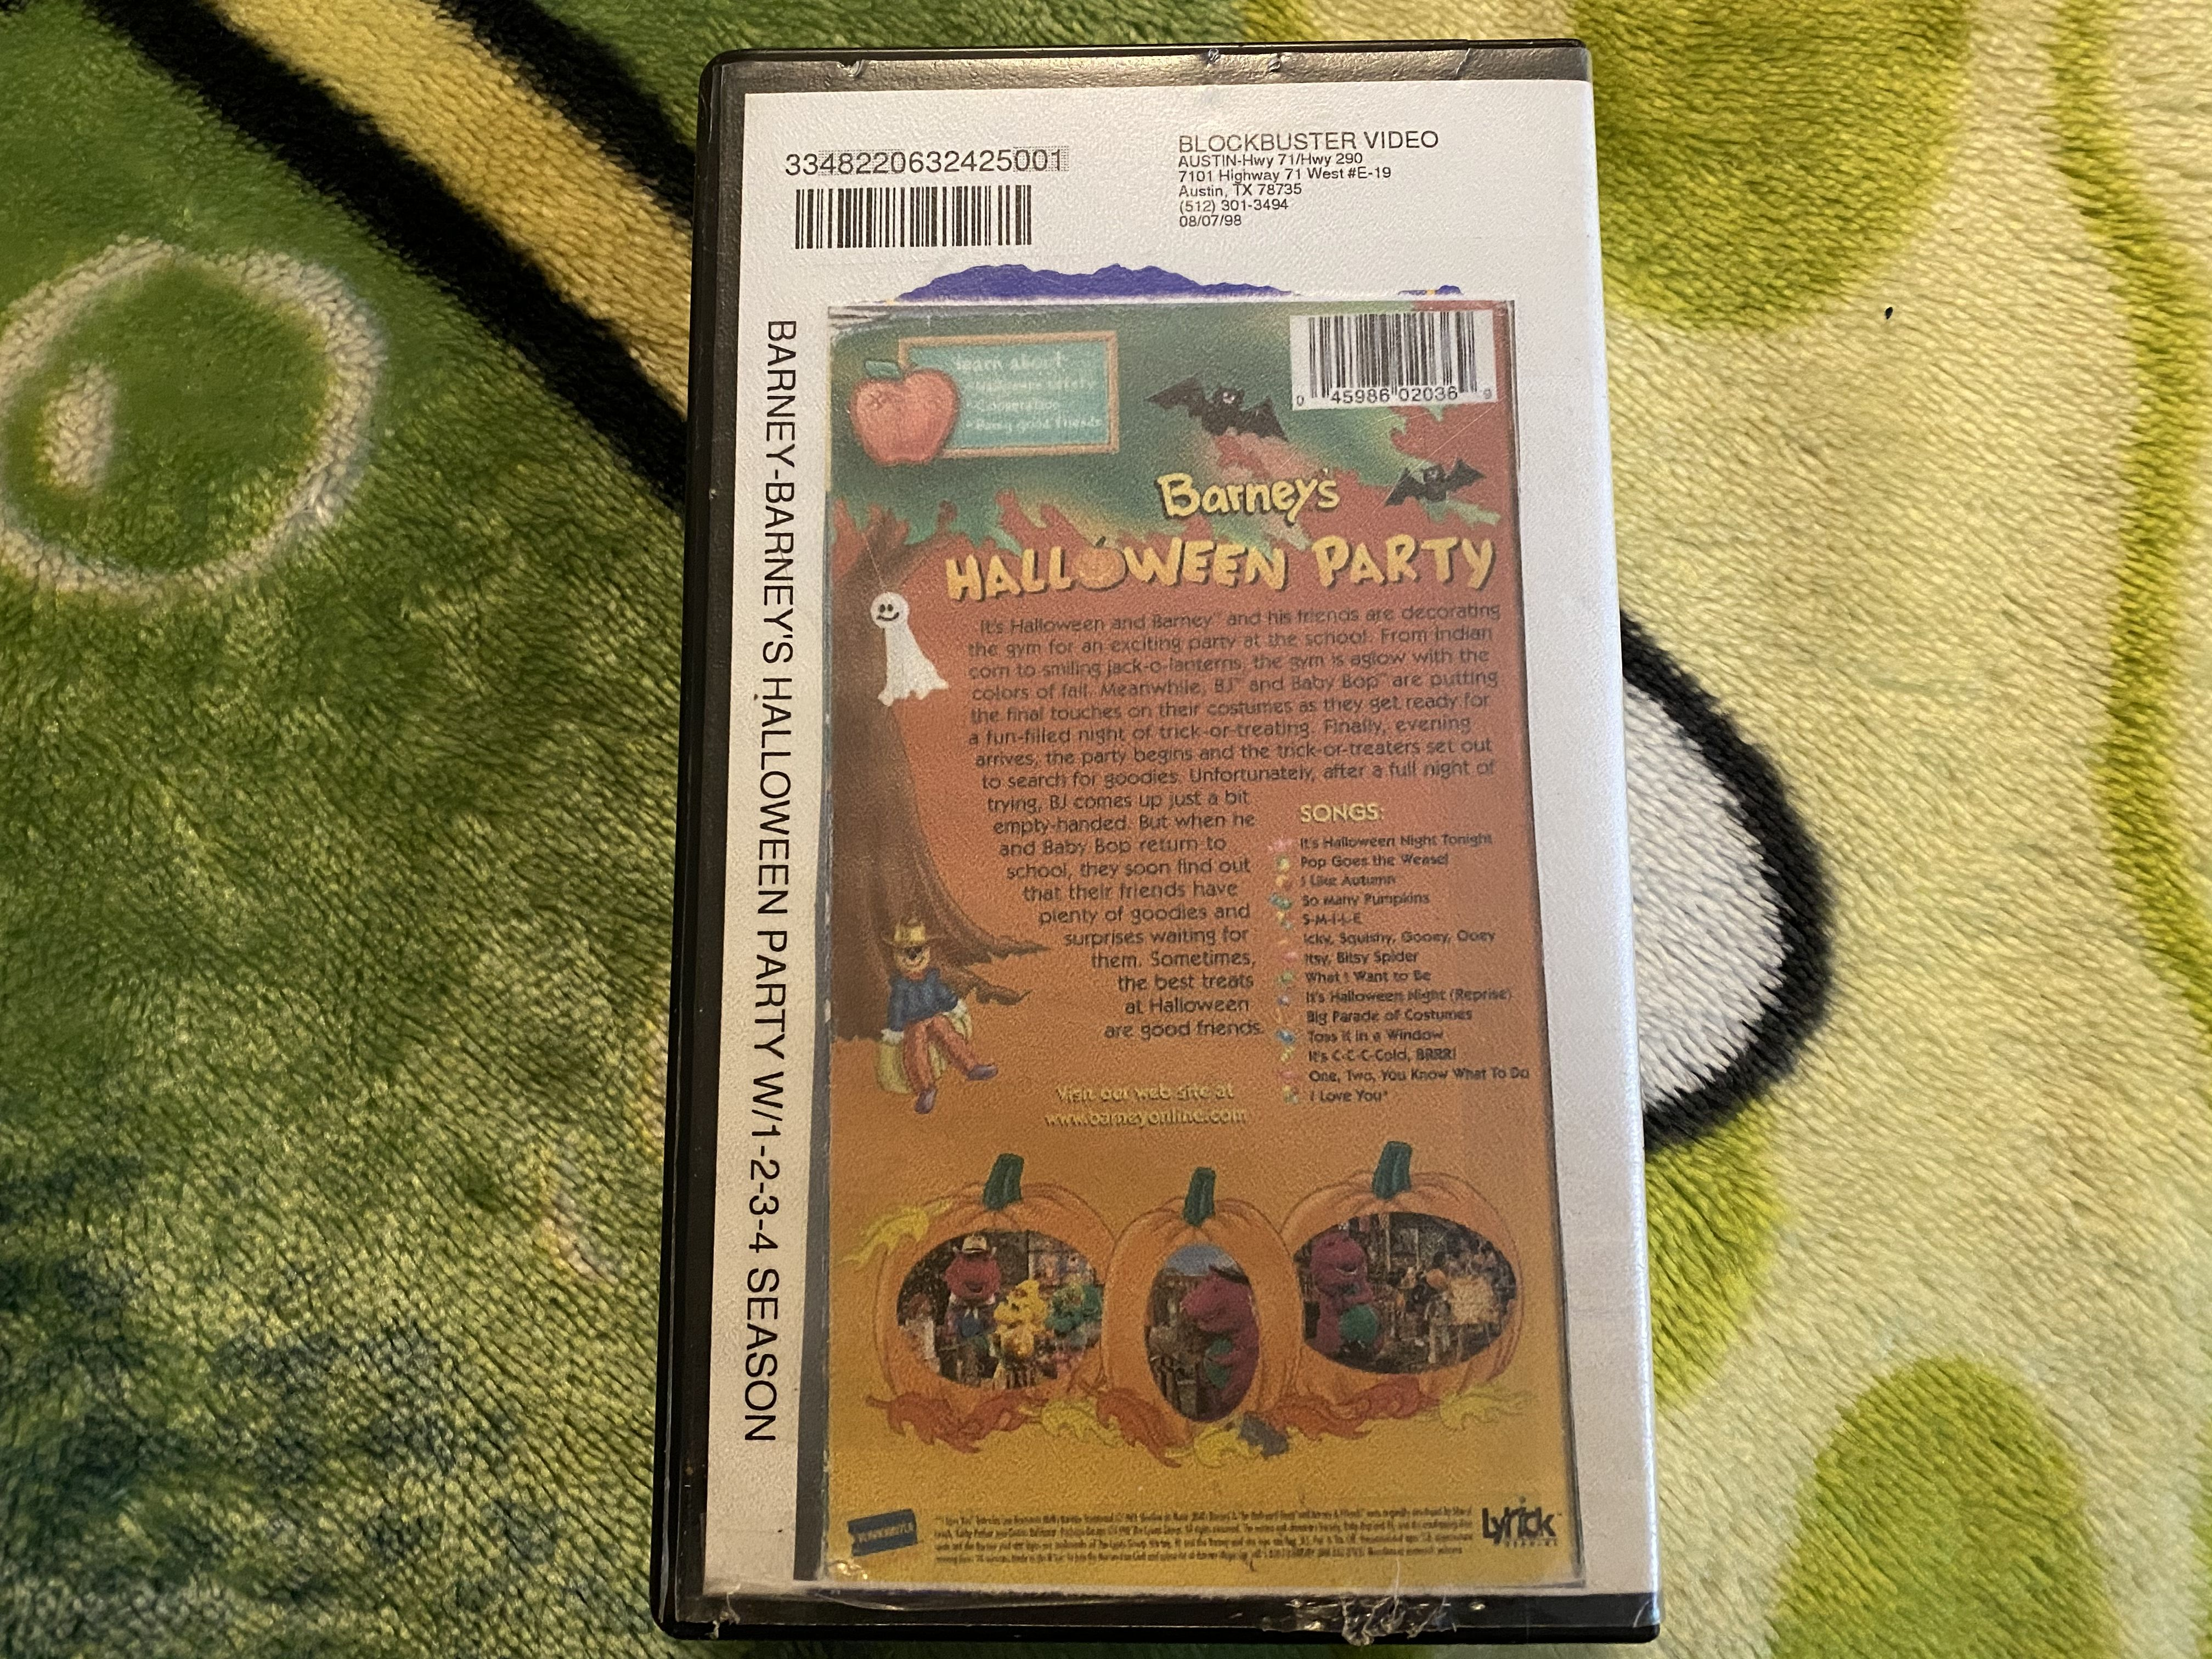 2020 Vhs Halloween Barney's Halloween Party (Blockbuster Exclusive) 1999 VHS in 2020